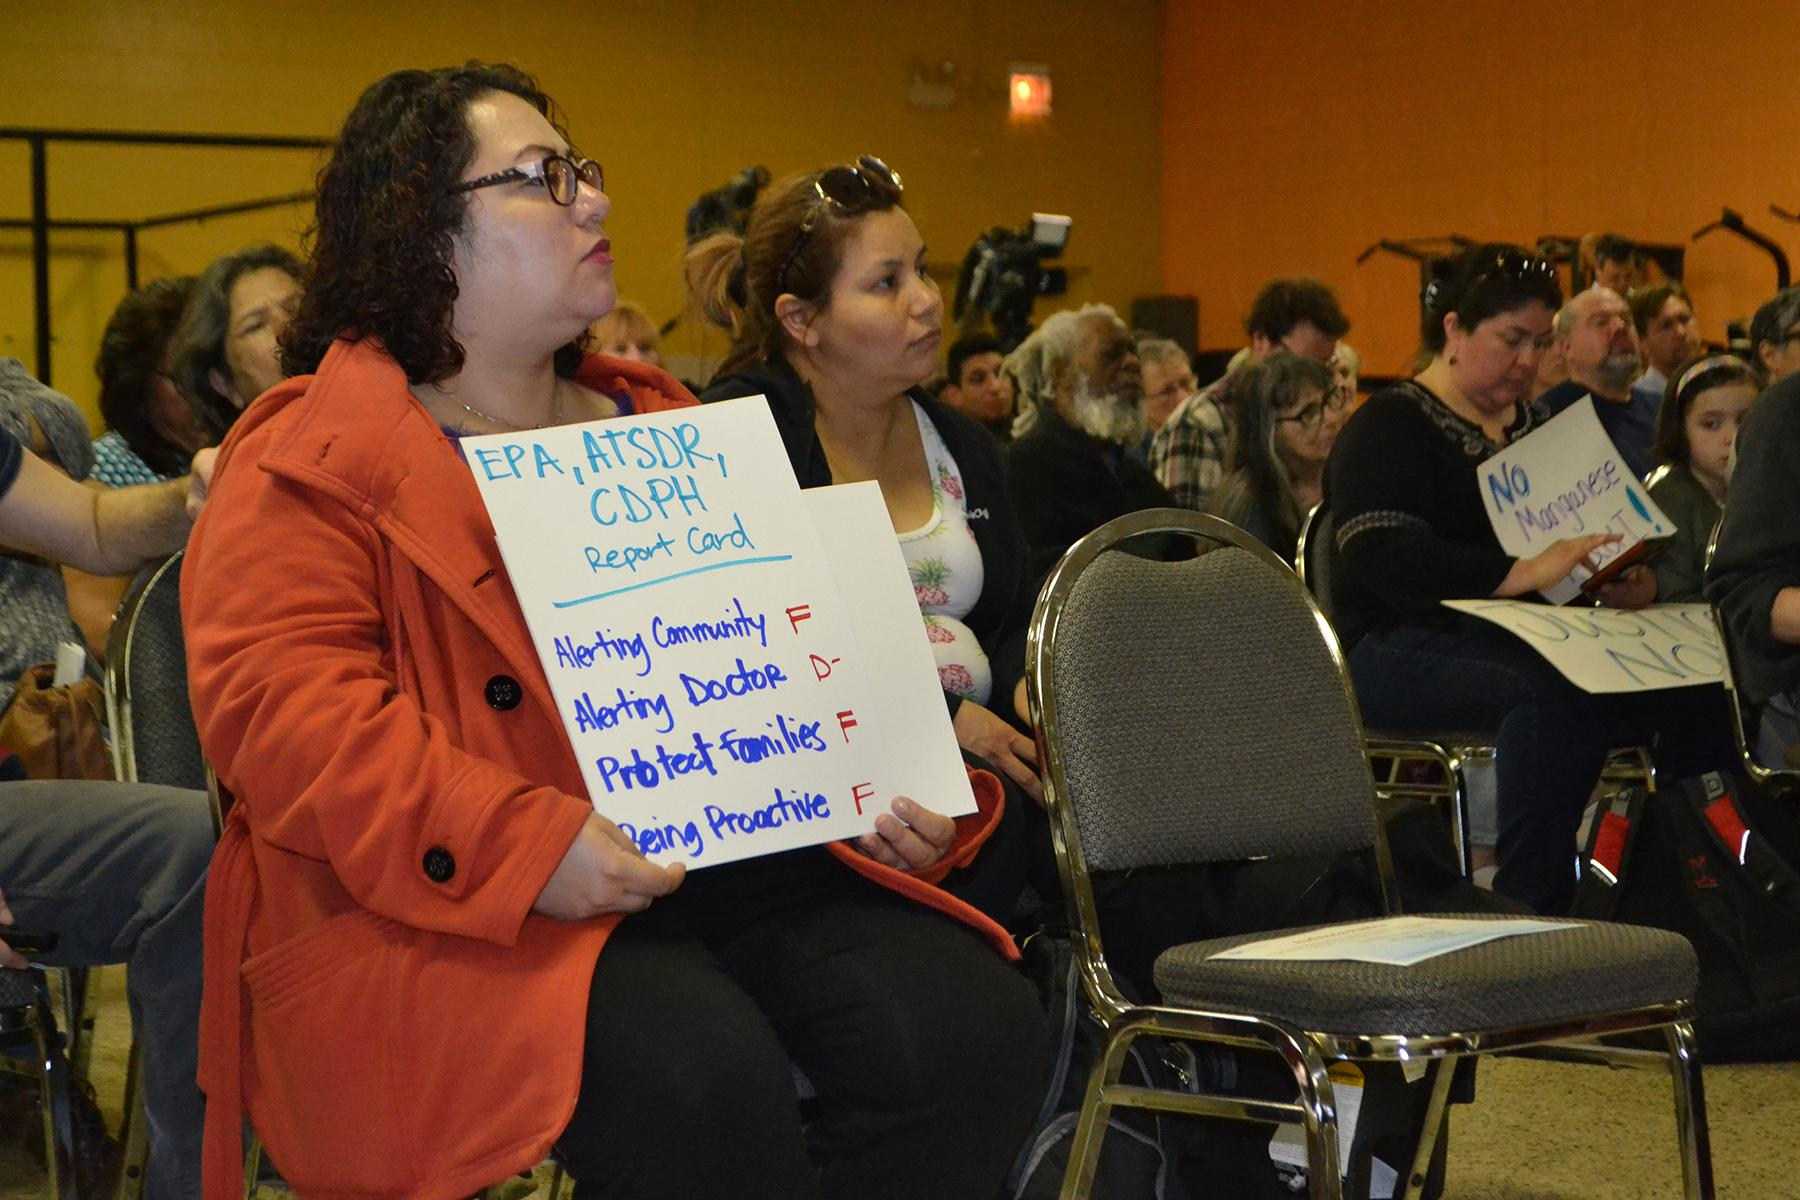 Residents criticized public health officials during a public meeting Thursday for what they said has been a slow response to manganese pollution on the Southeast Side. (Alex Ruppenthal / Chicago Tonight)